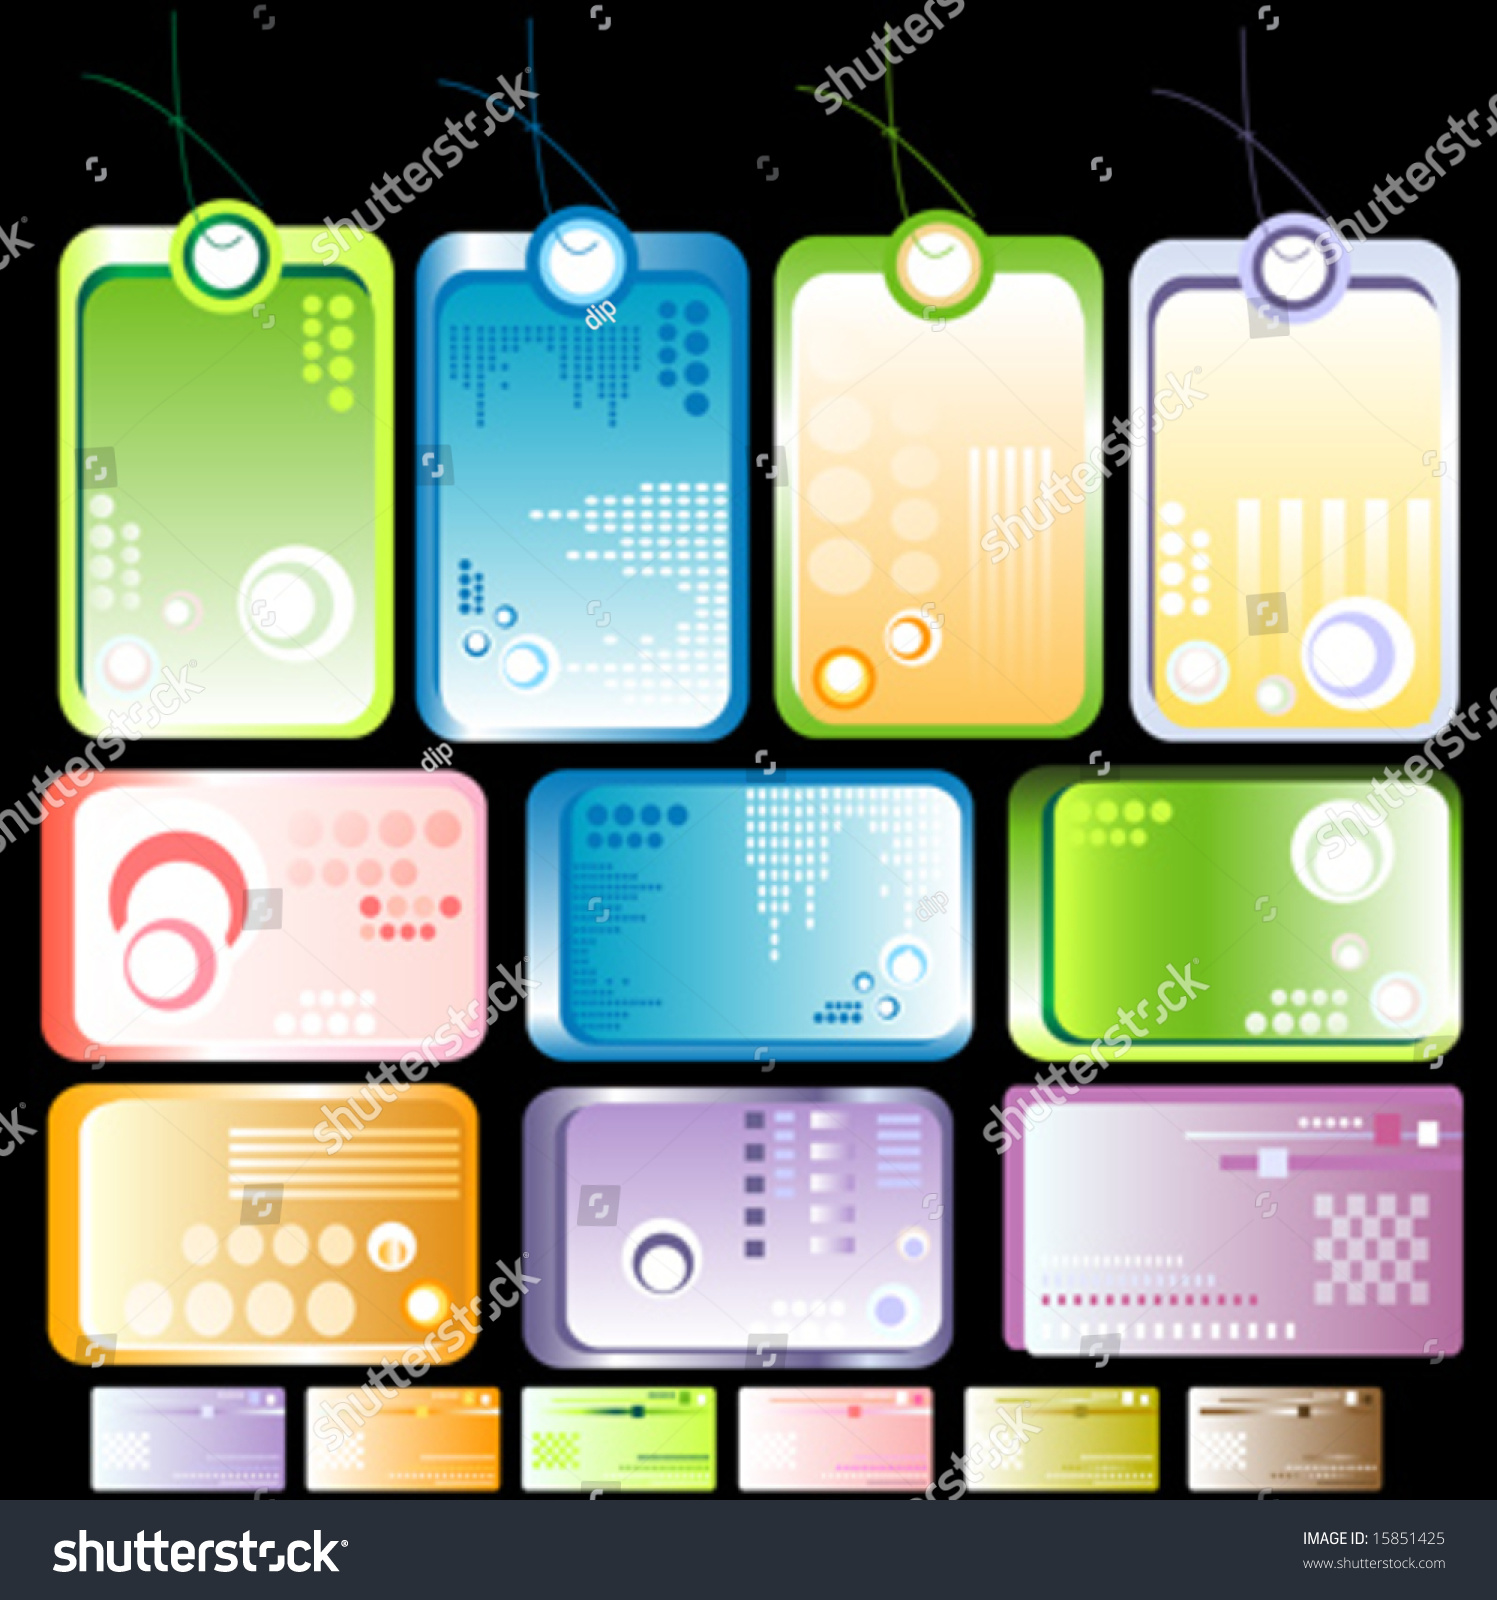 Pretty Labels For Business Cards Images - Business Card Ideas ...